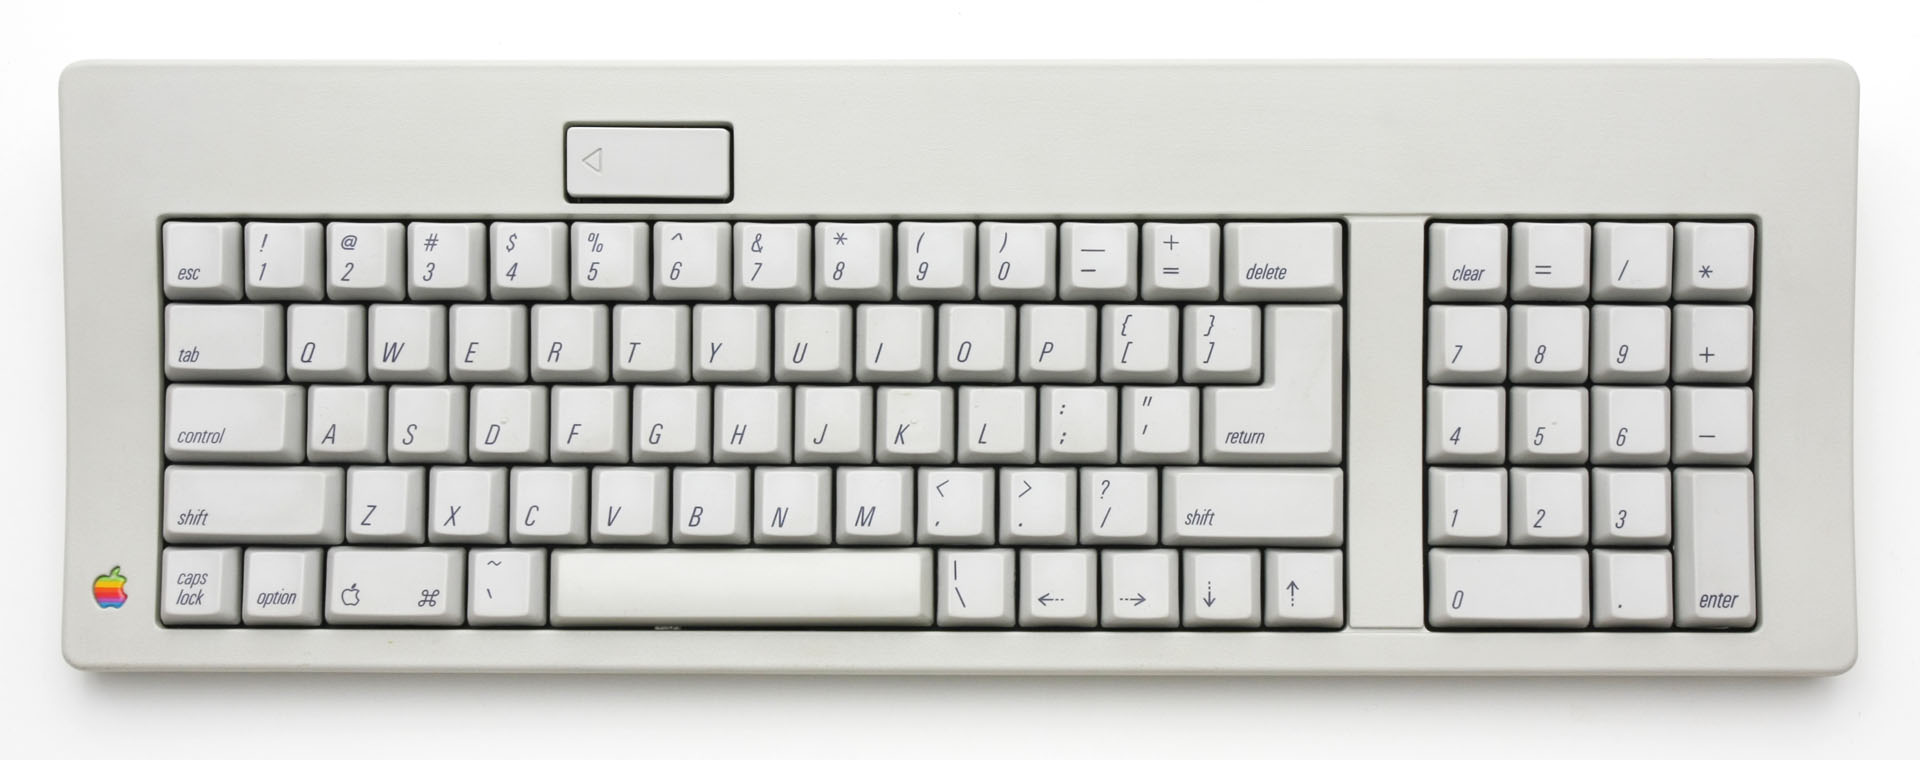 Apple's Standard Keyboard from the mid 1980s, with Control and Caps Lock roughly switched    compared to today's standard layout.